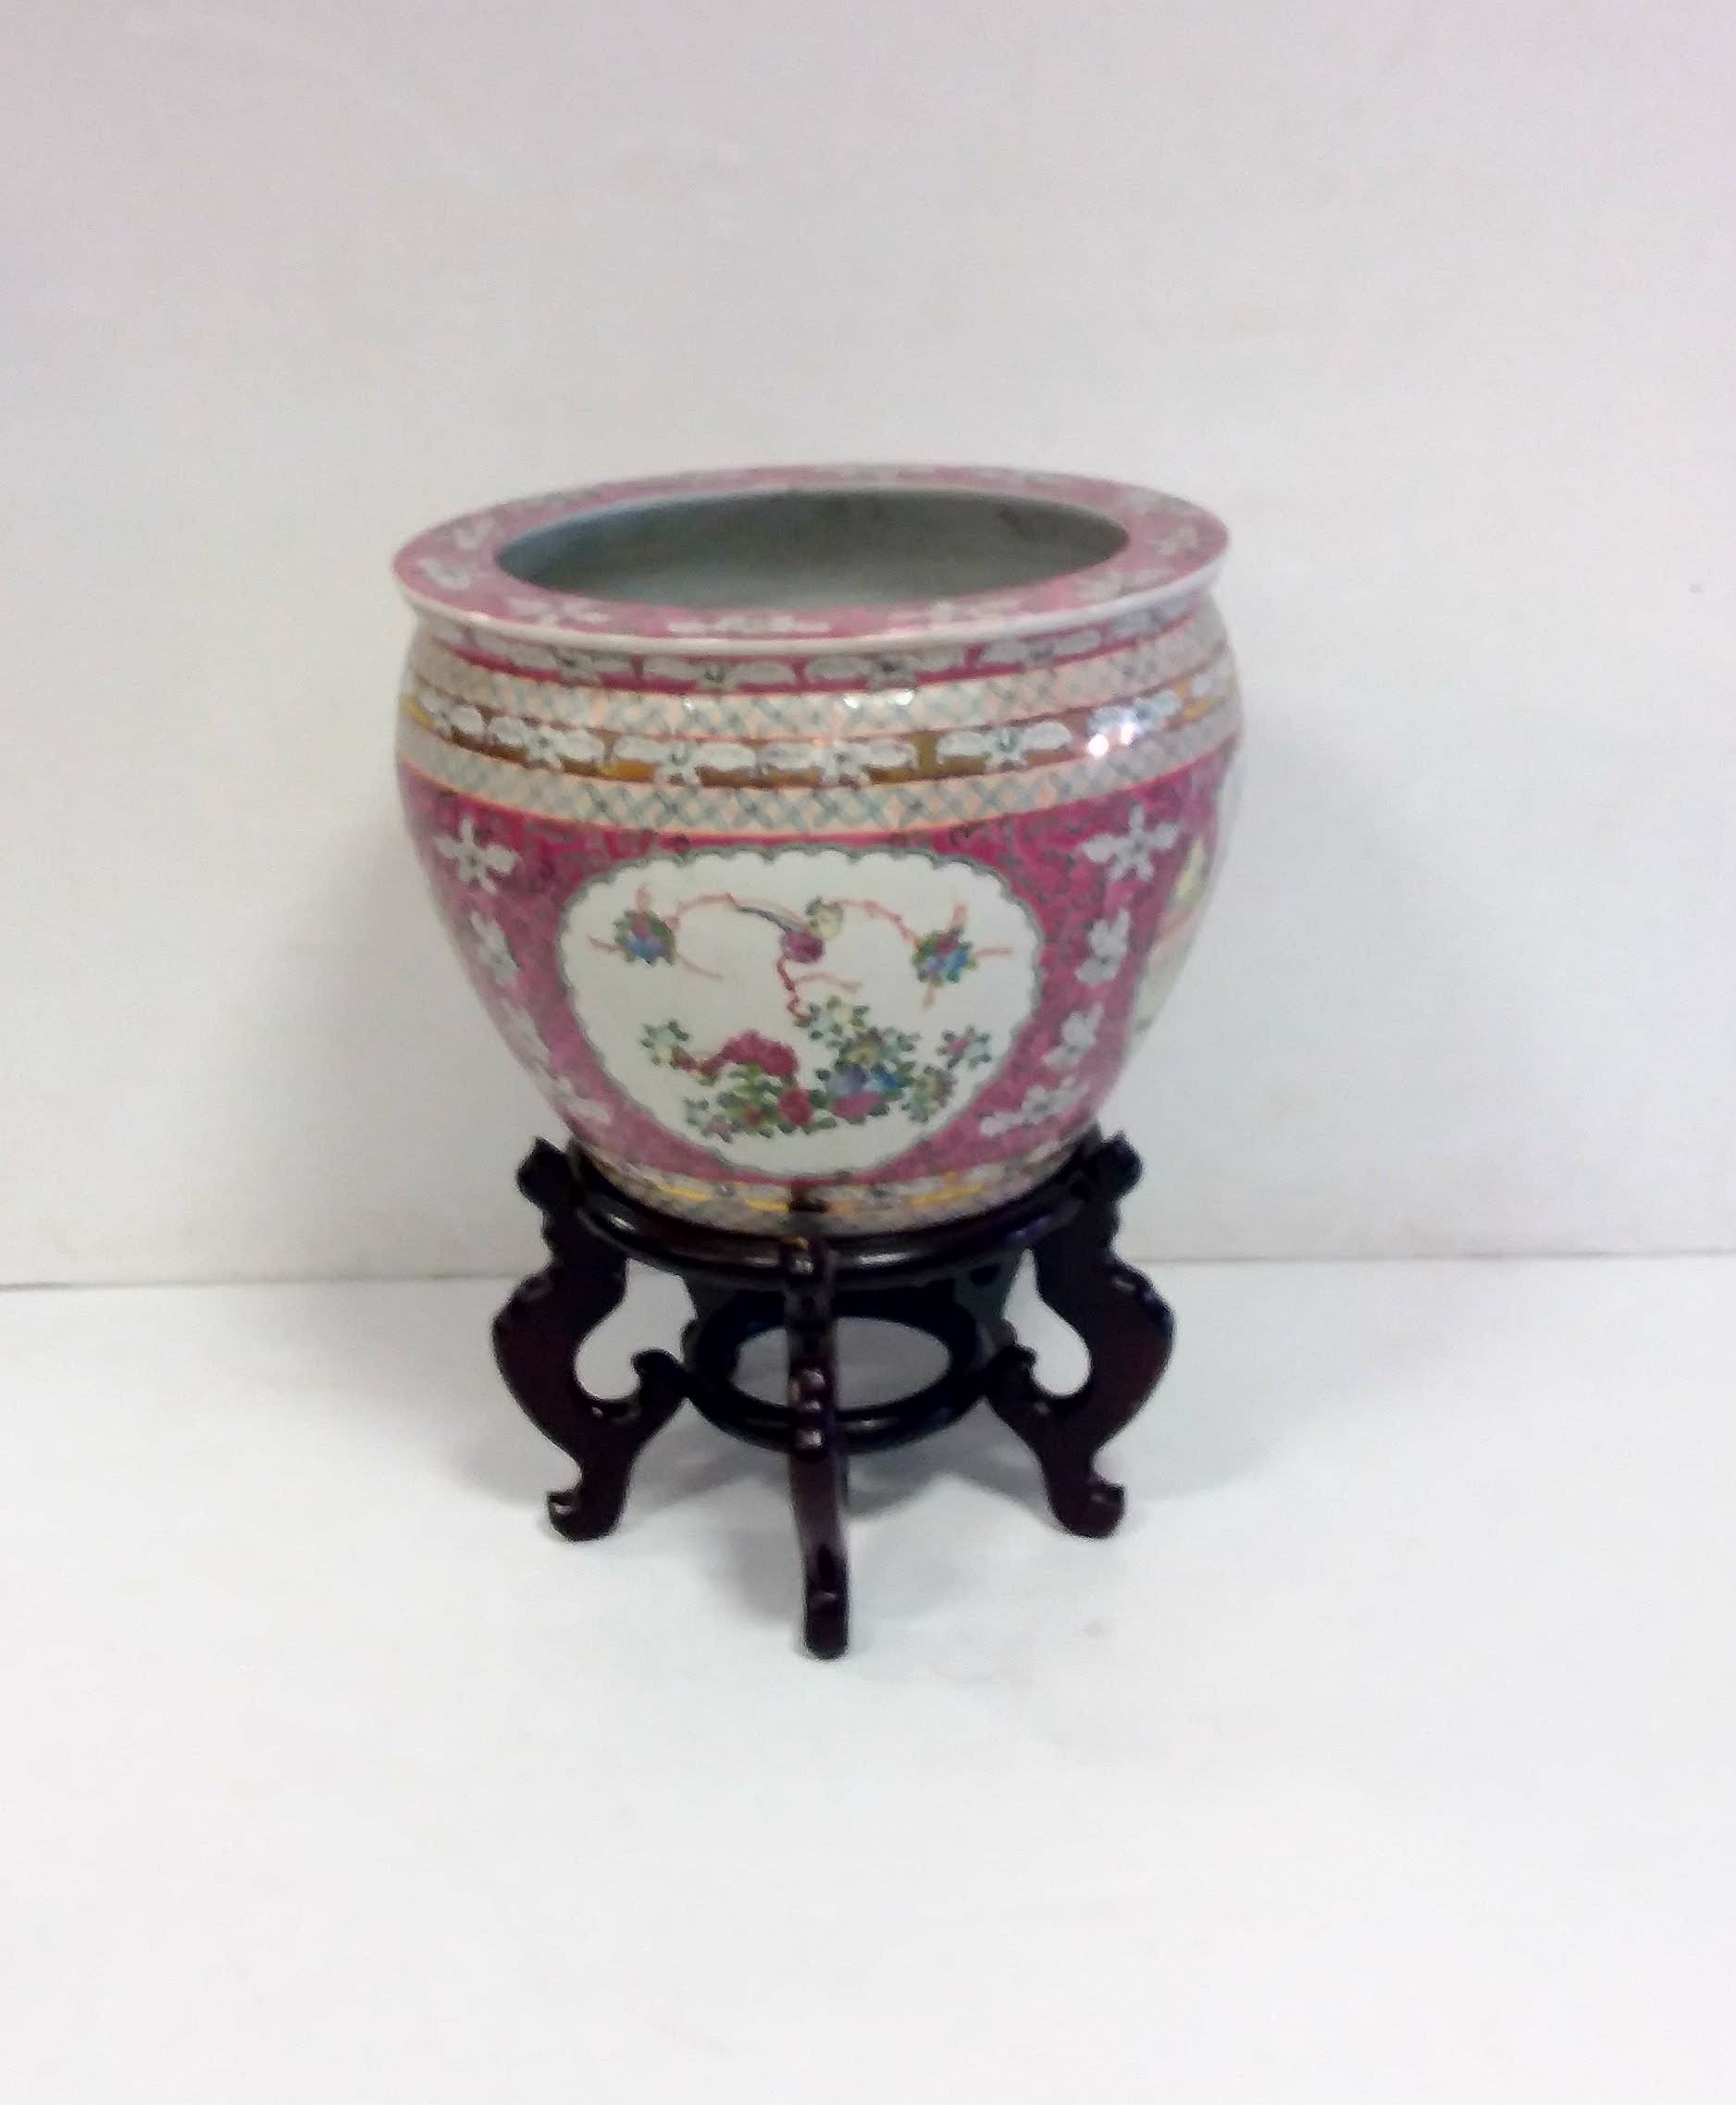 Antique style chinese fish bowl stand reilly antiques for Chinese fish bowl